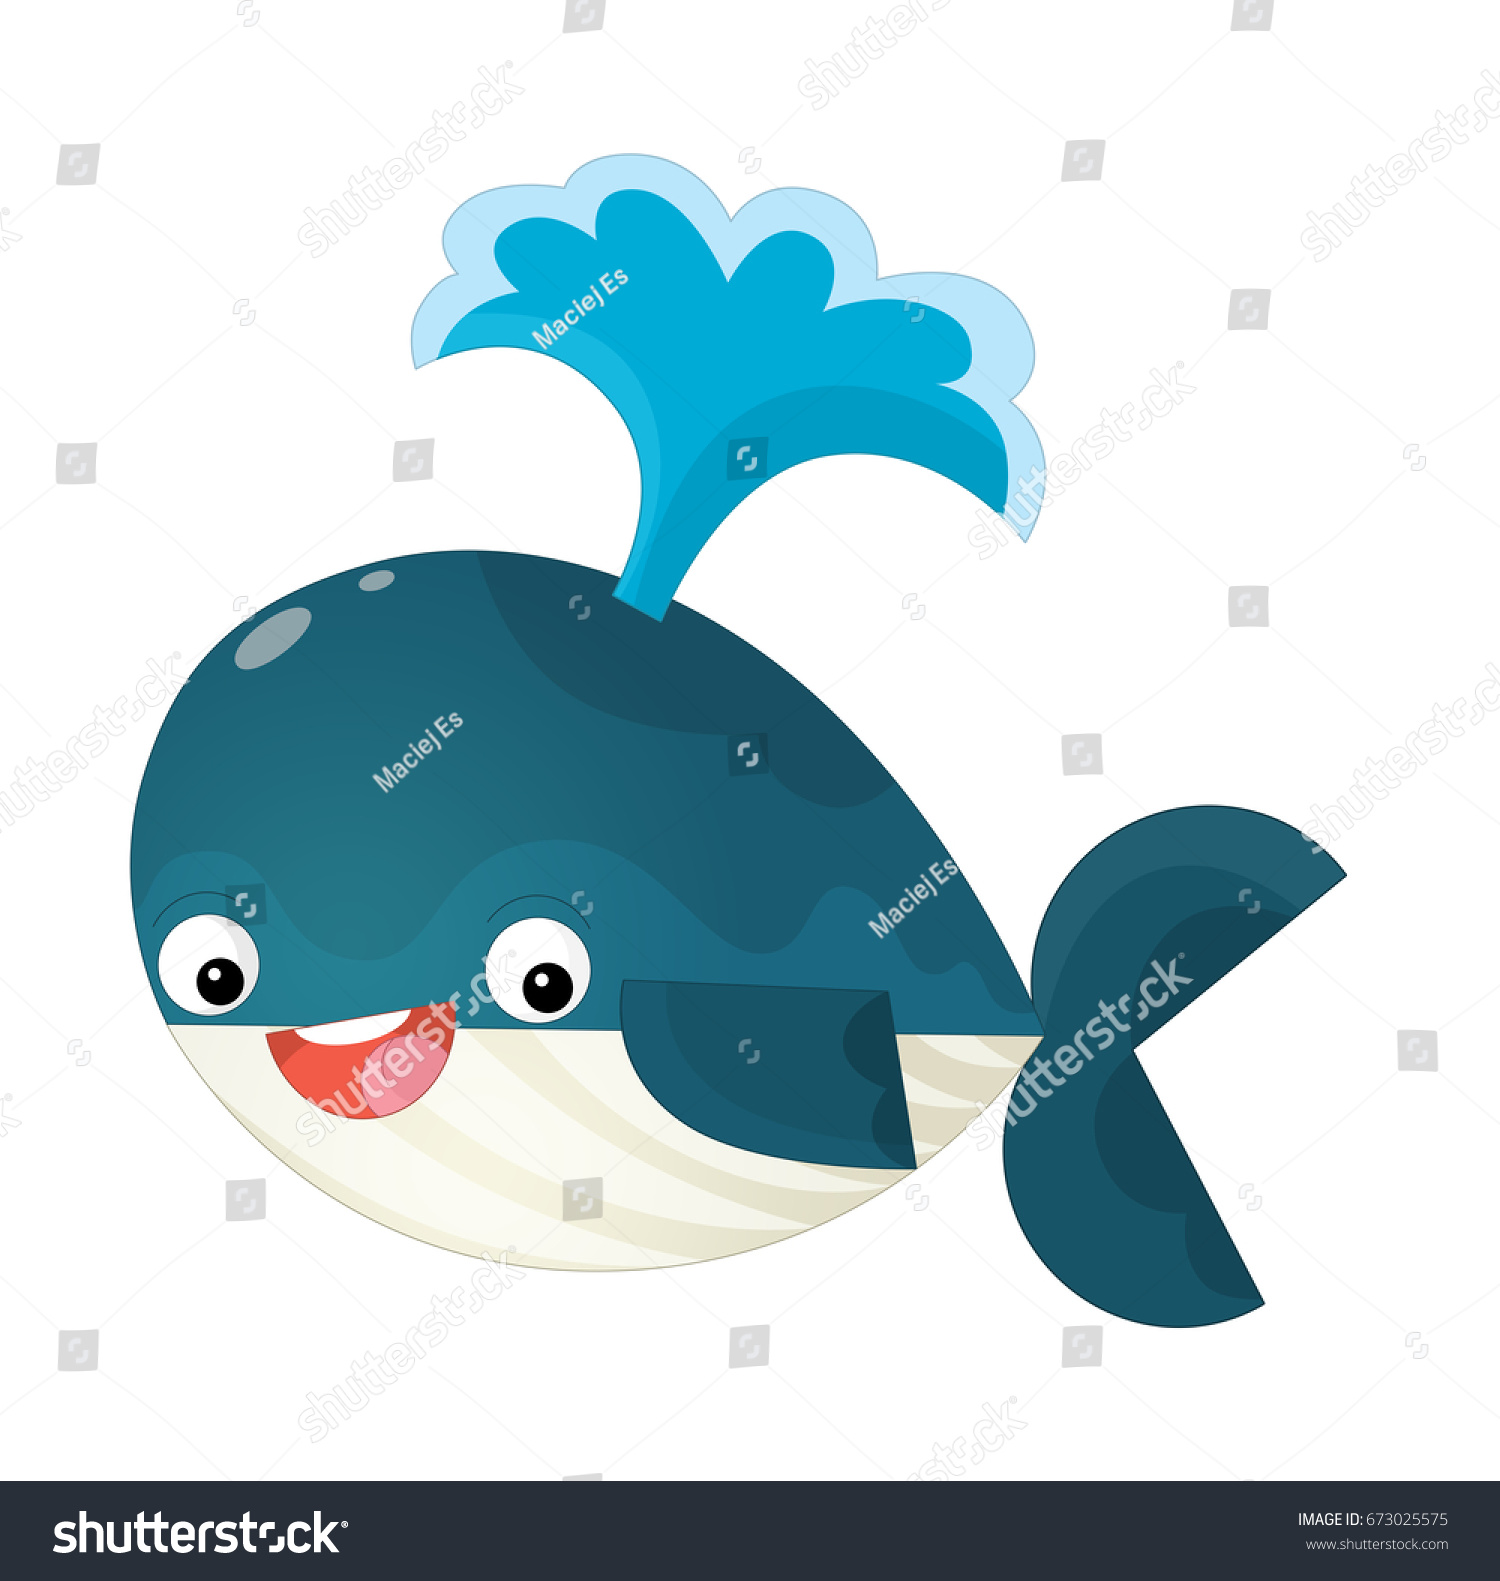 Cute whale in water cartoon isolated illustration stock photography - Cartoon Happy And Funny Sea Whale Spraying Water Illustration For Children